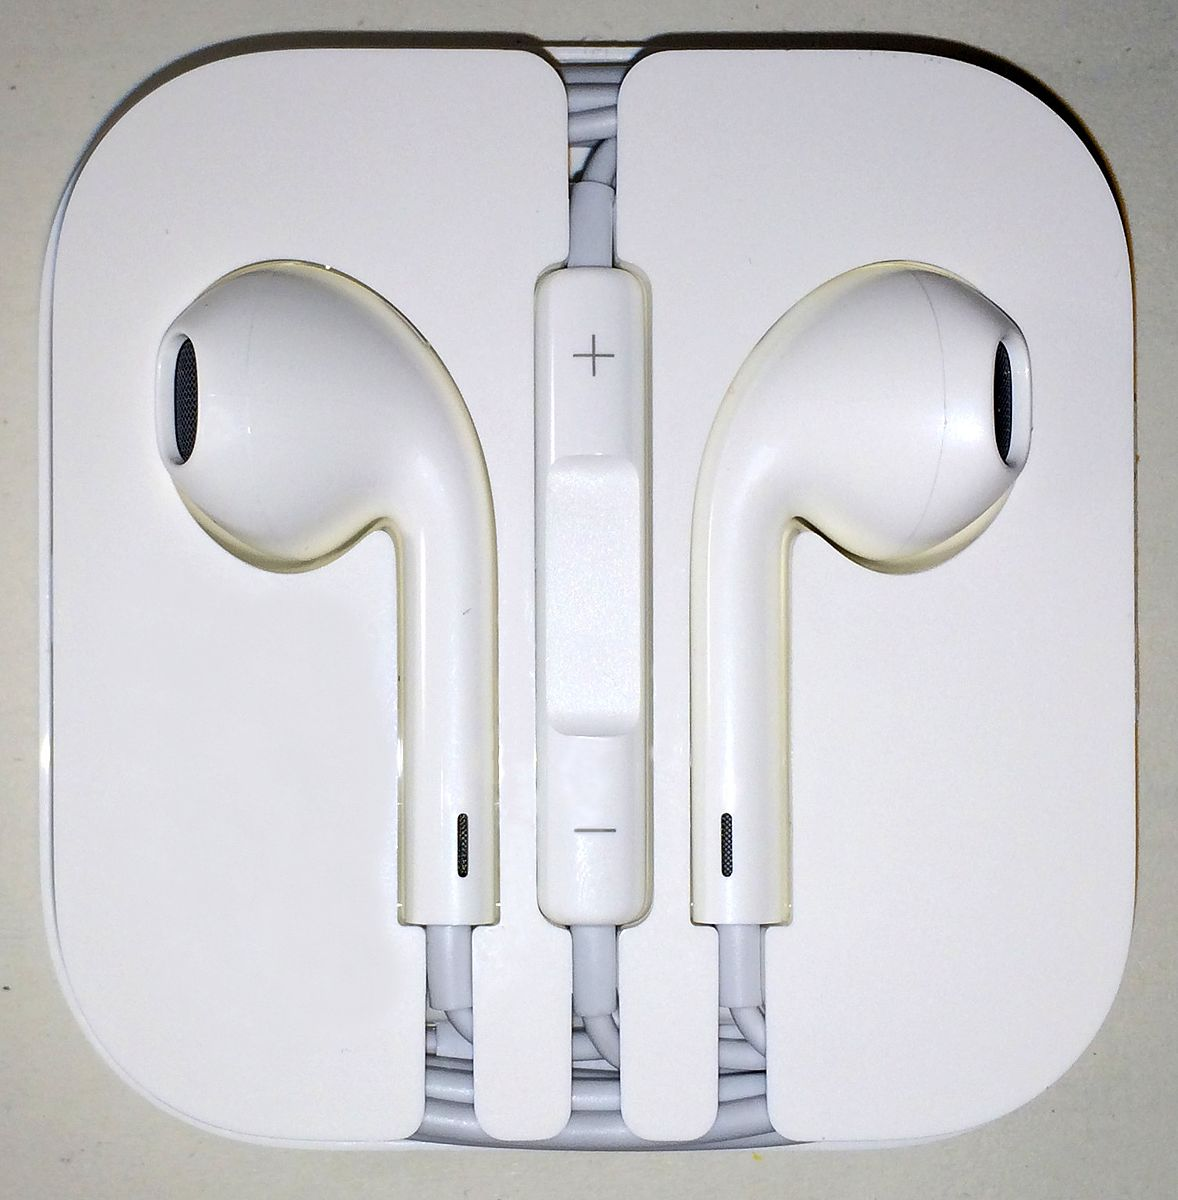 Difference Between EarPods and AirPods